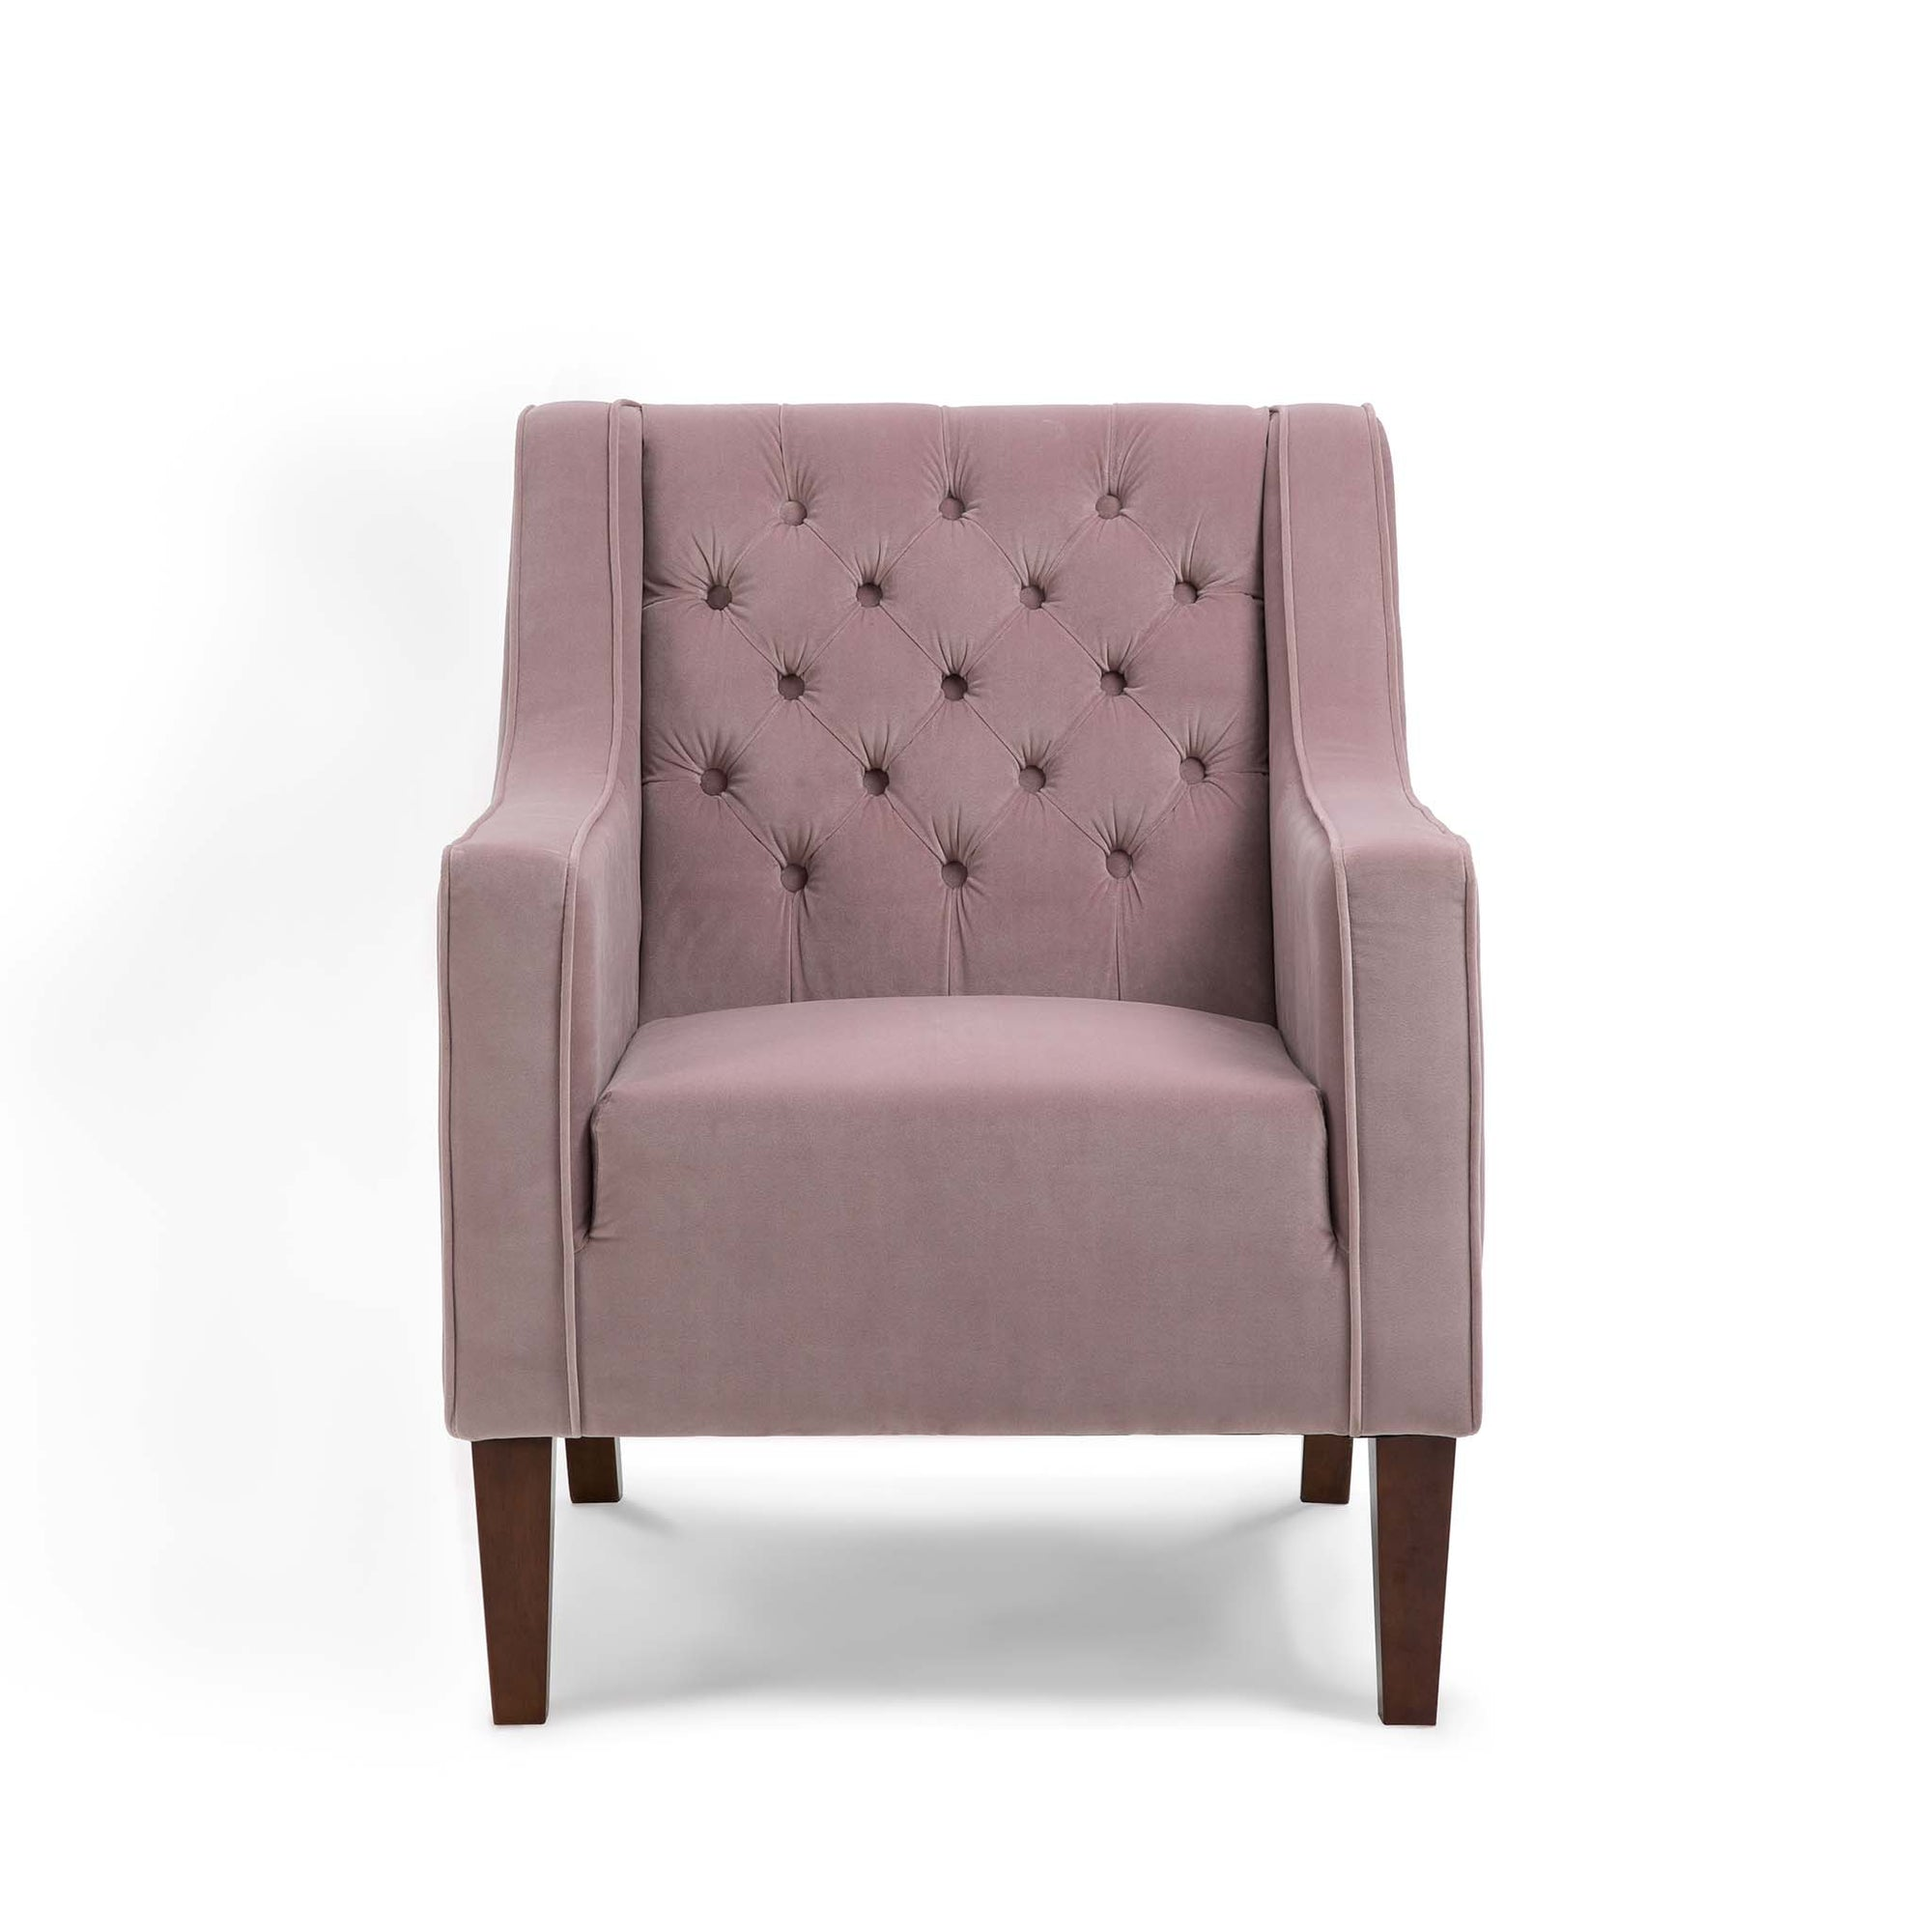 Eliza Heather Chesterfield Arm Chair by Roseland Furniture